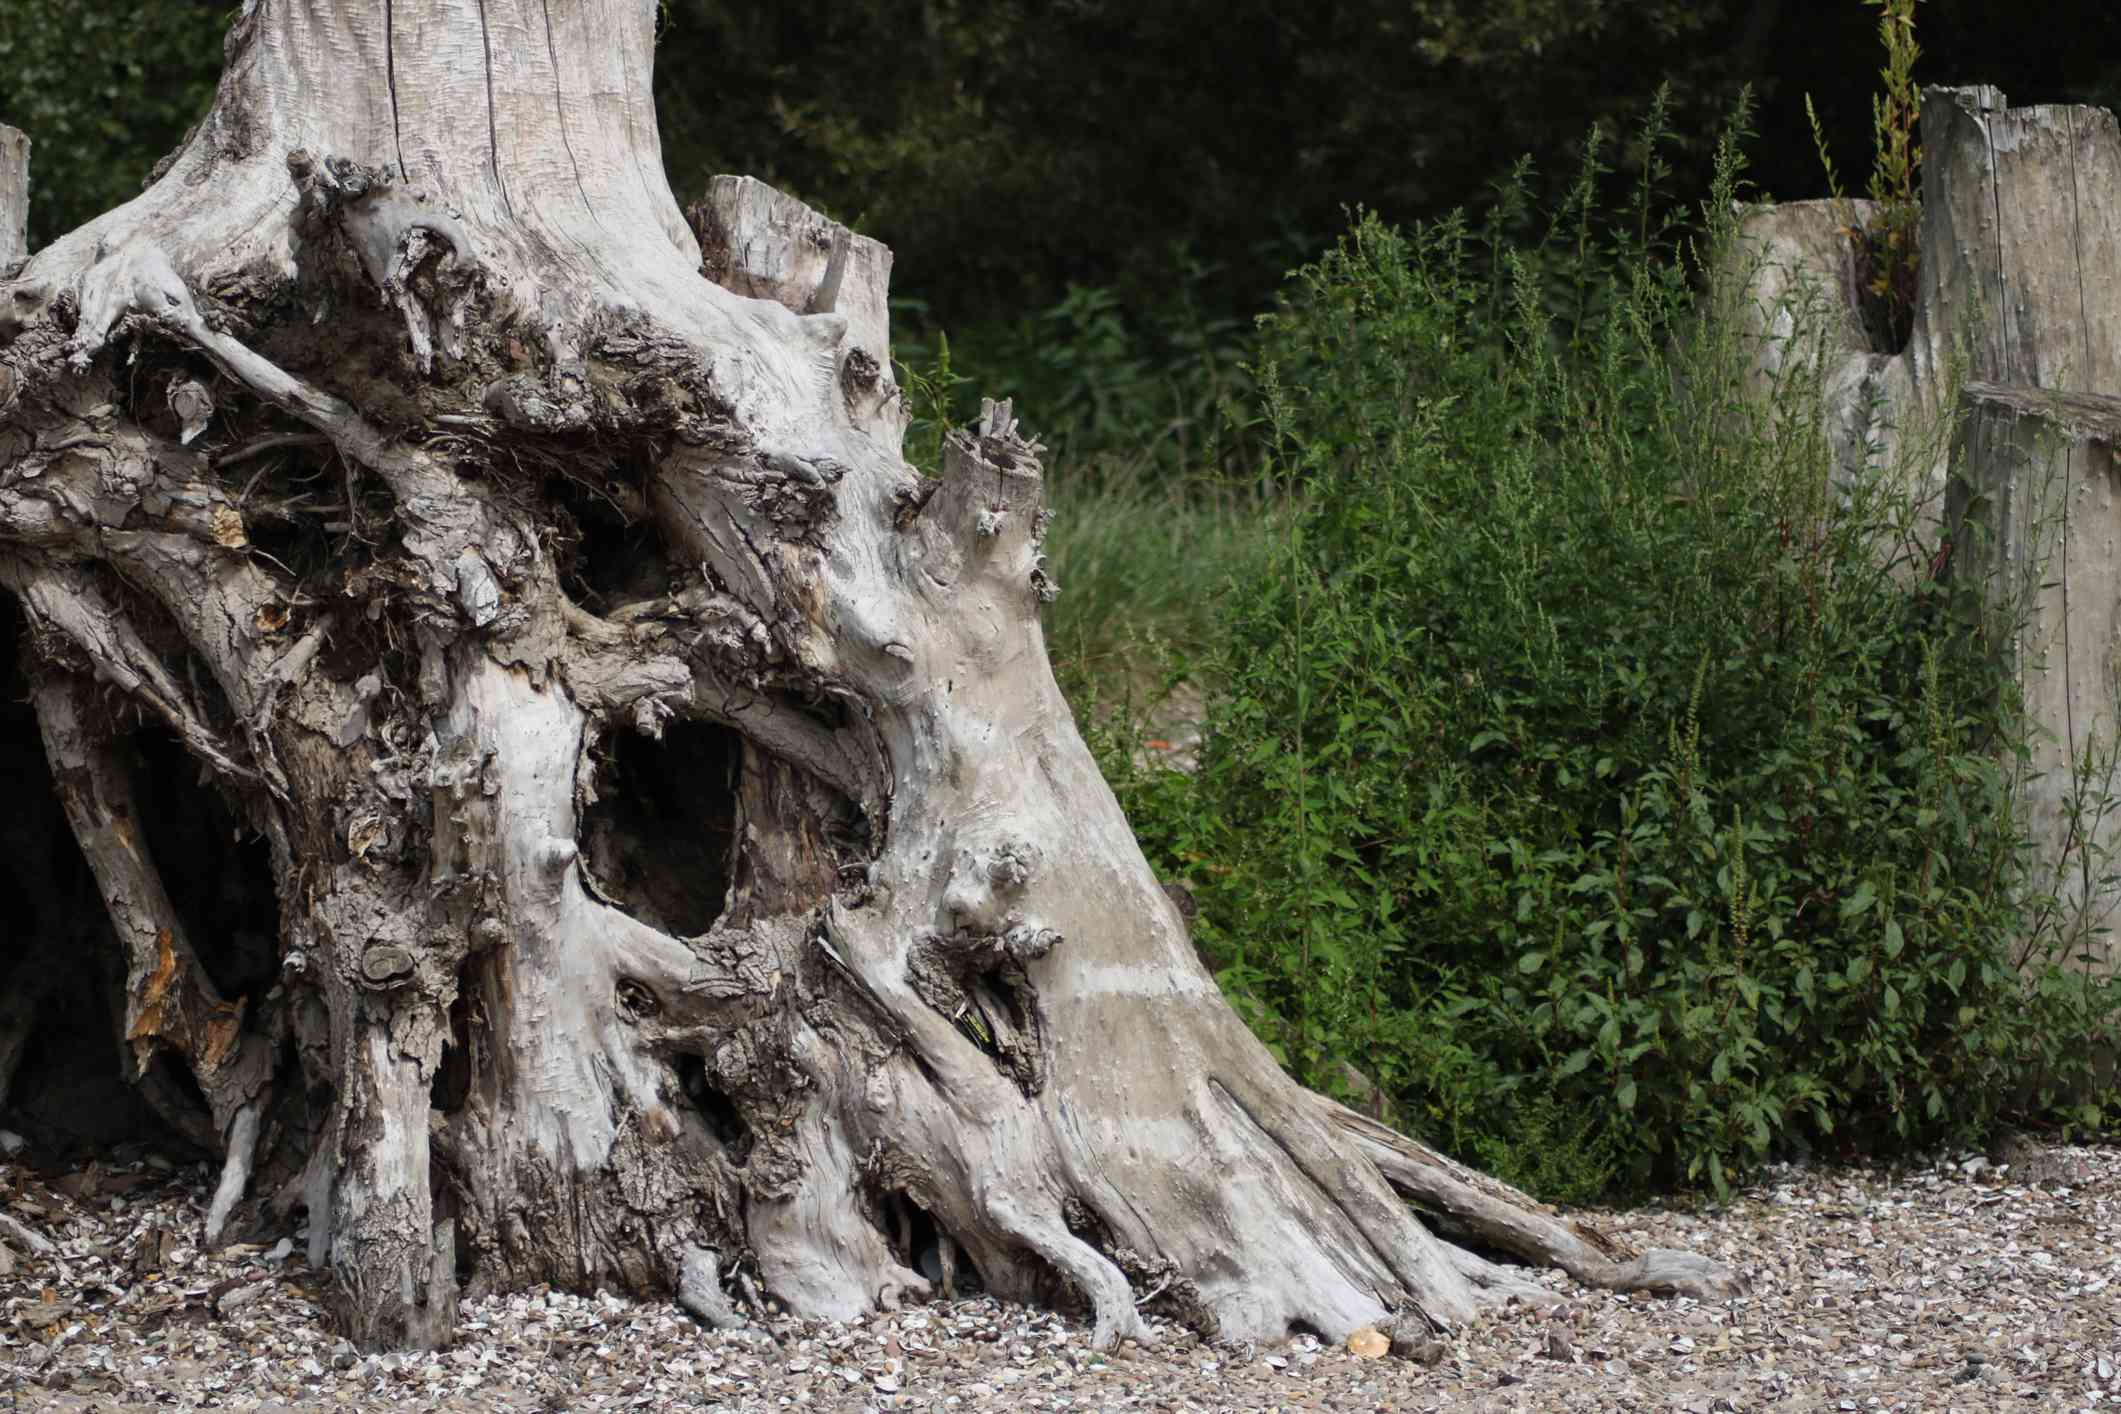 Dry dead roots of a tree on a beach.